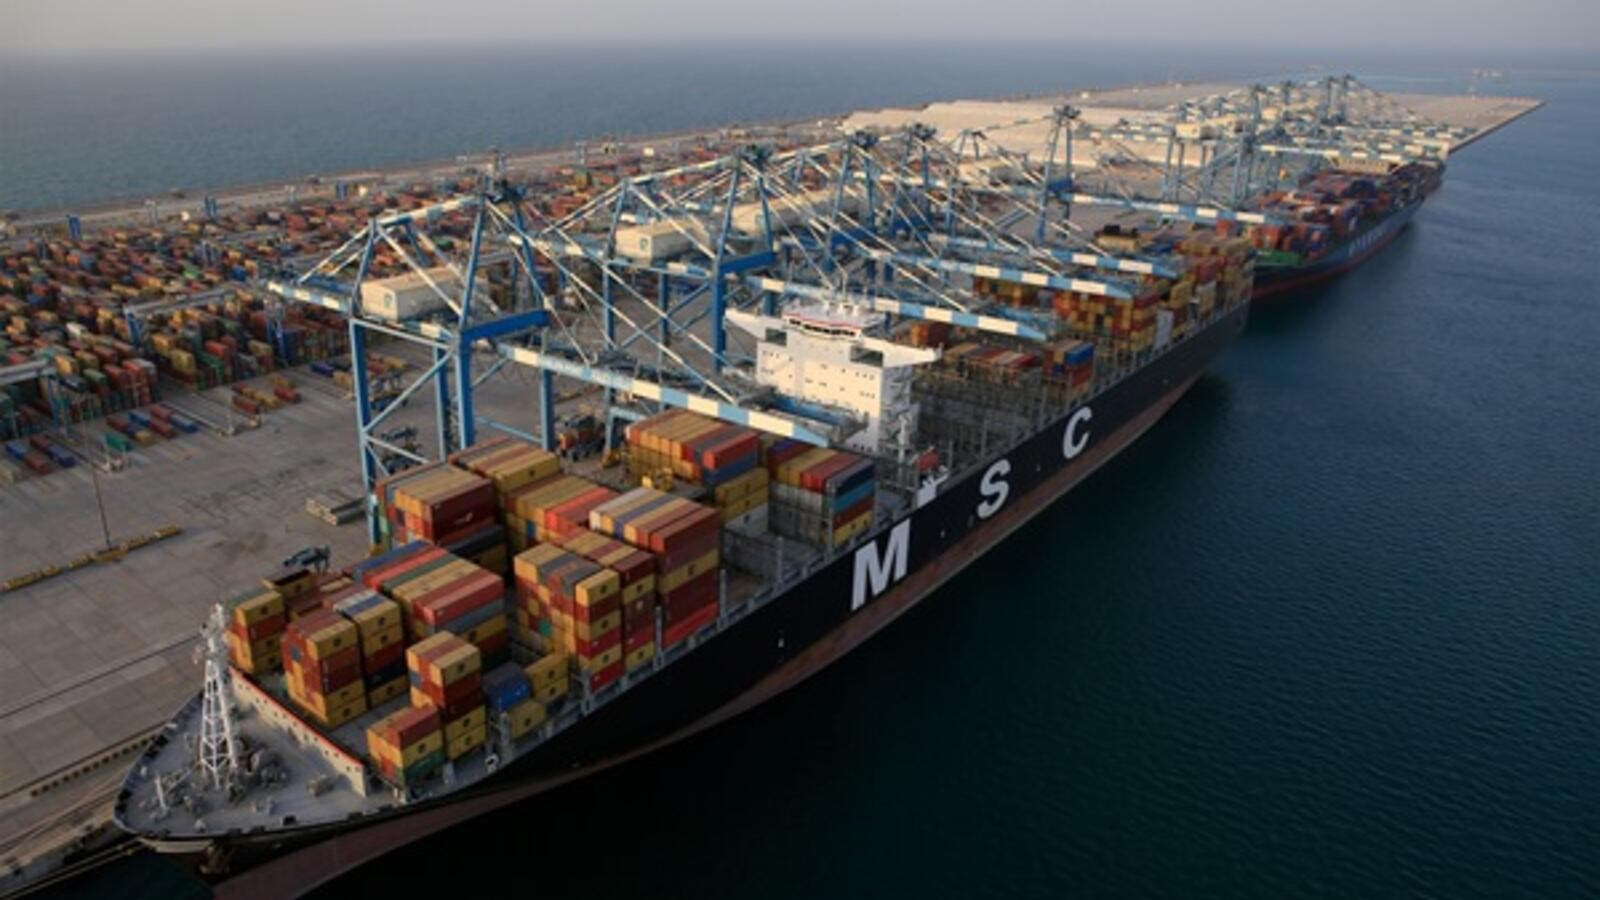 Oman was Qatar's top non-oil exports destination in August, with 45 percent of the total exports. (File photo)